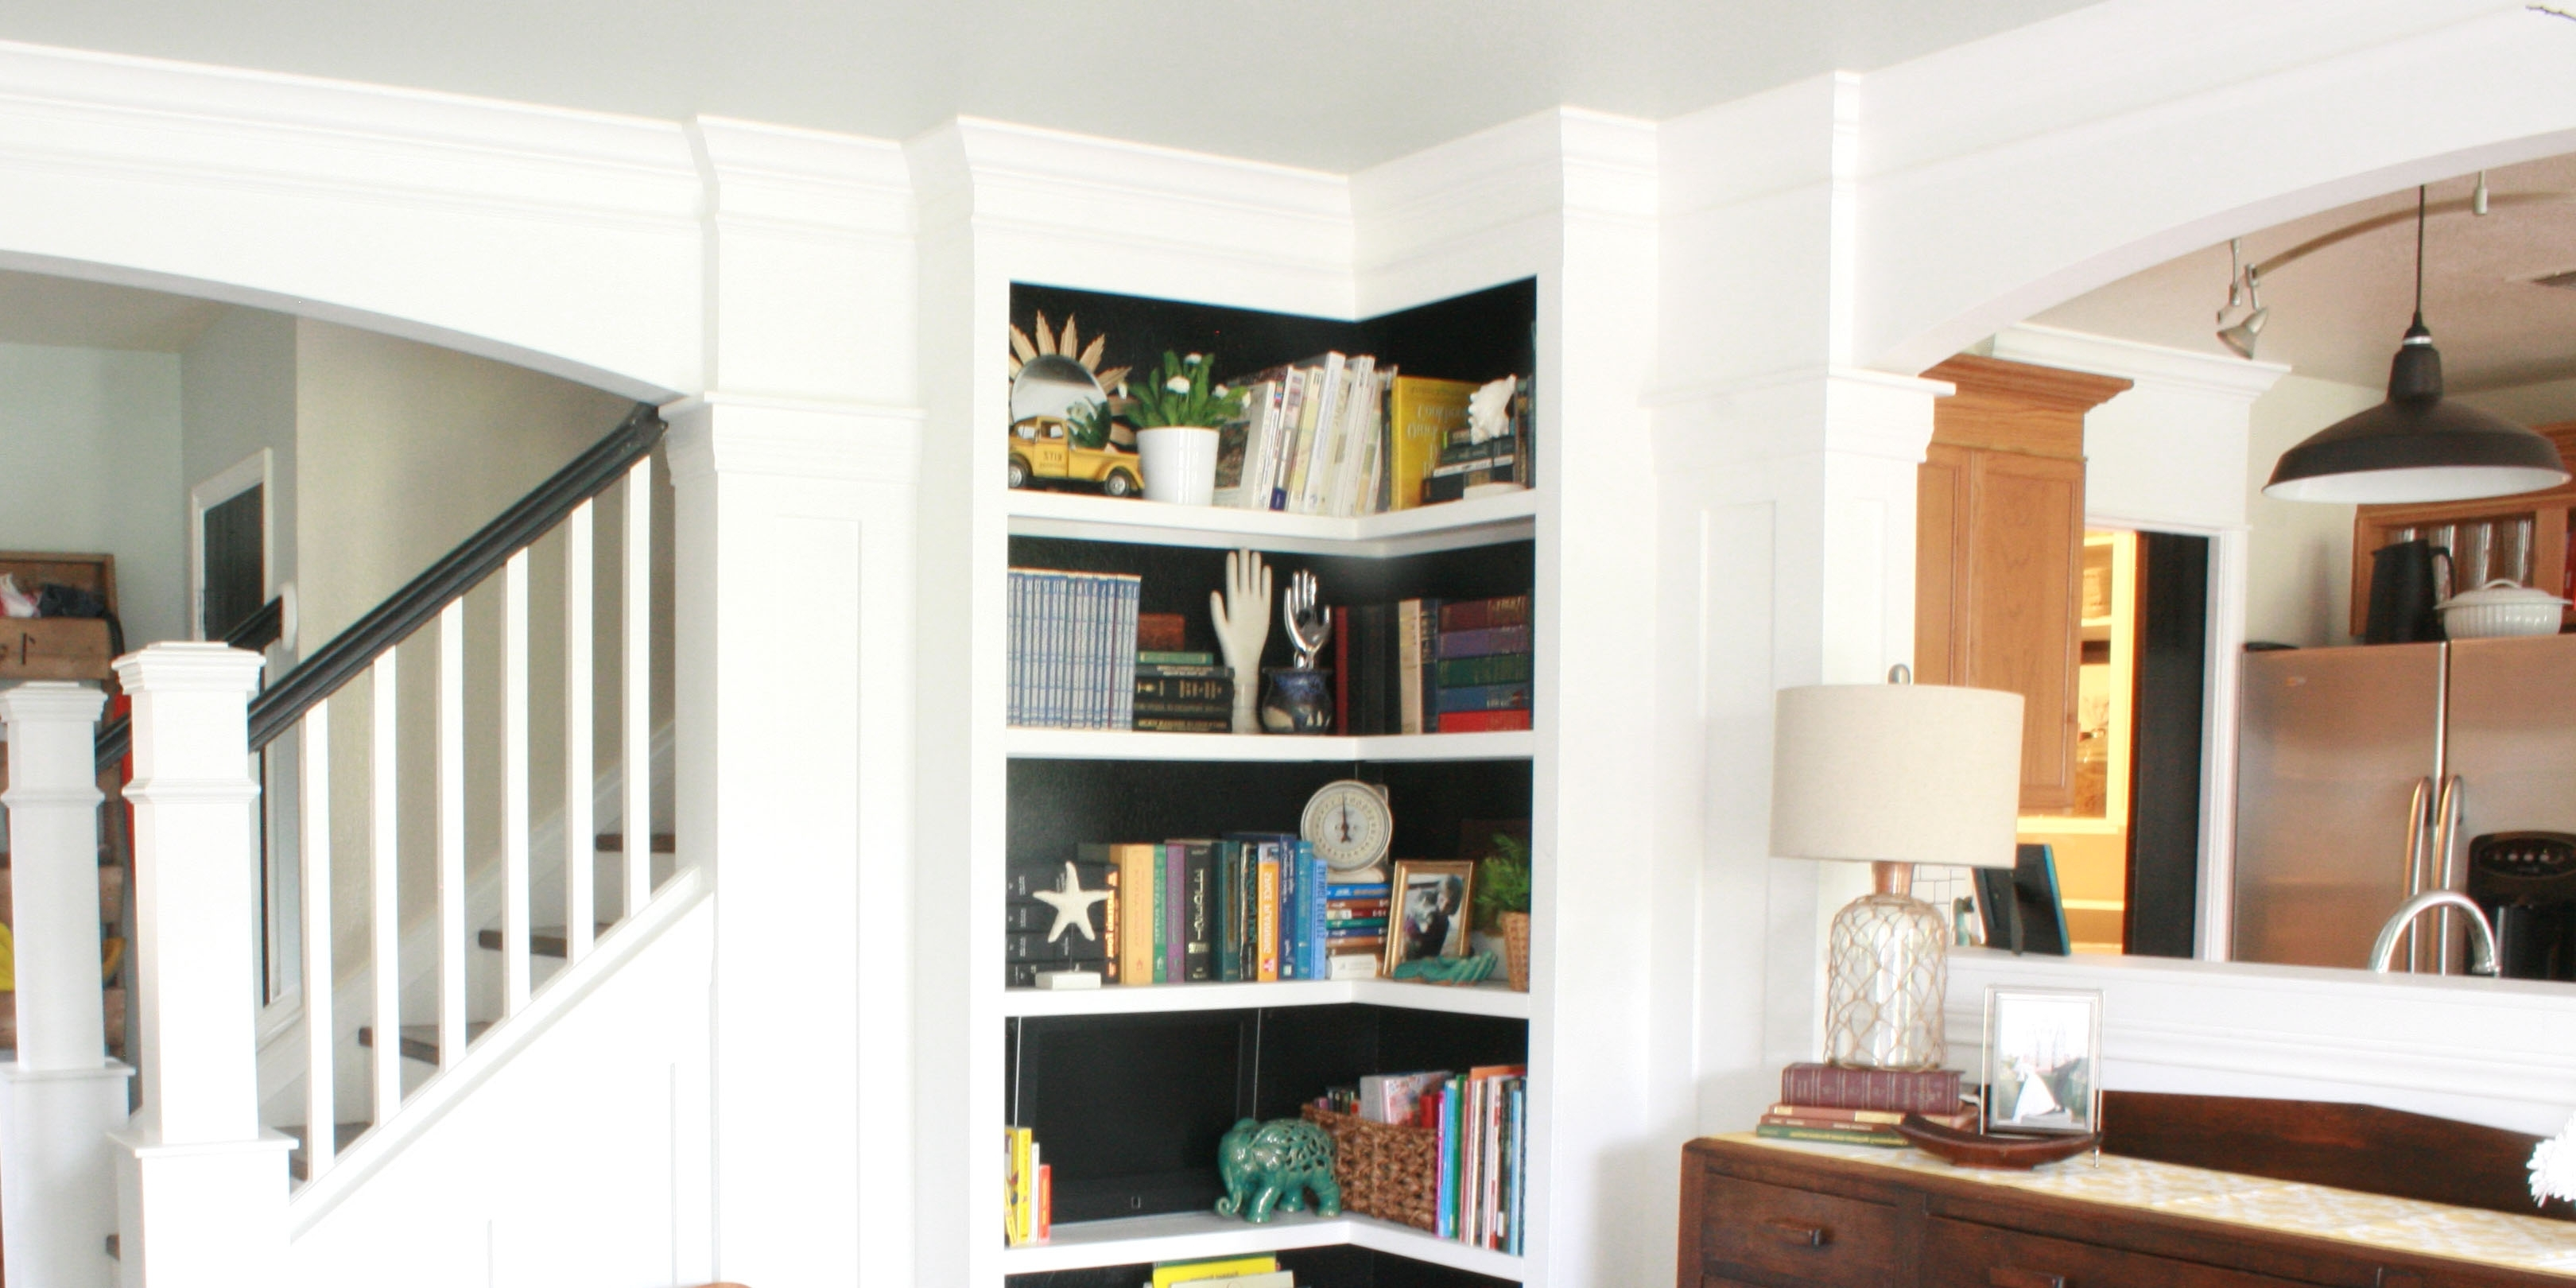 Diy Built In Bookcases Within Most Recent Build Your Own Corner Bookshelves (View 9 of 15)